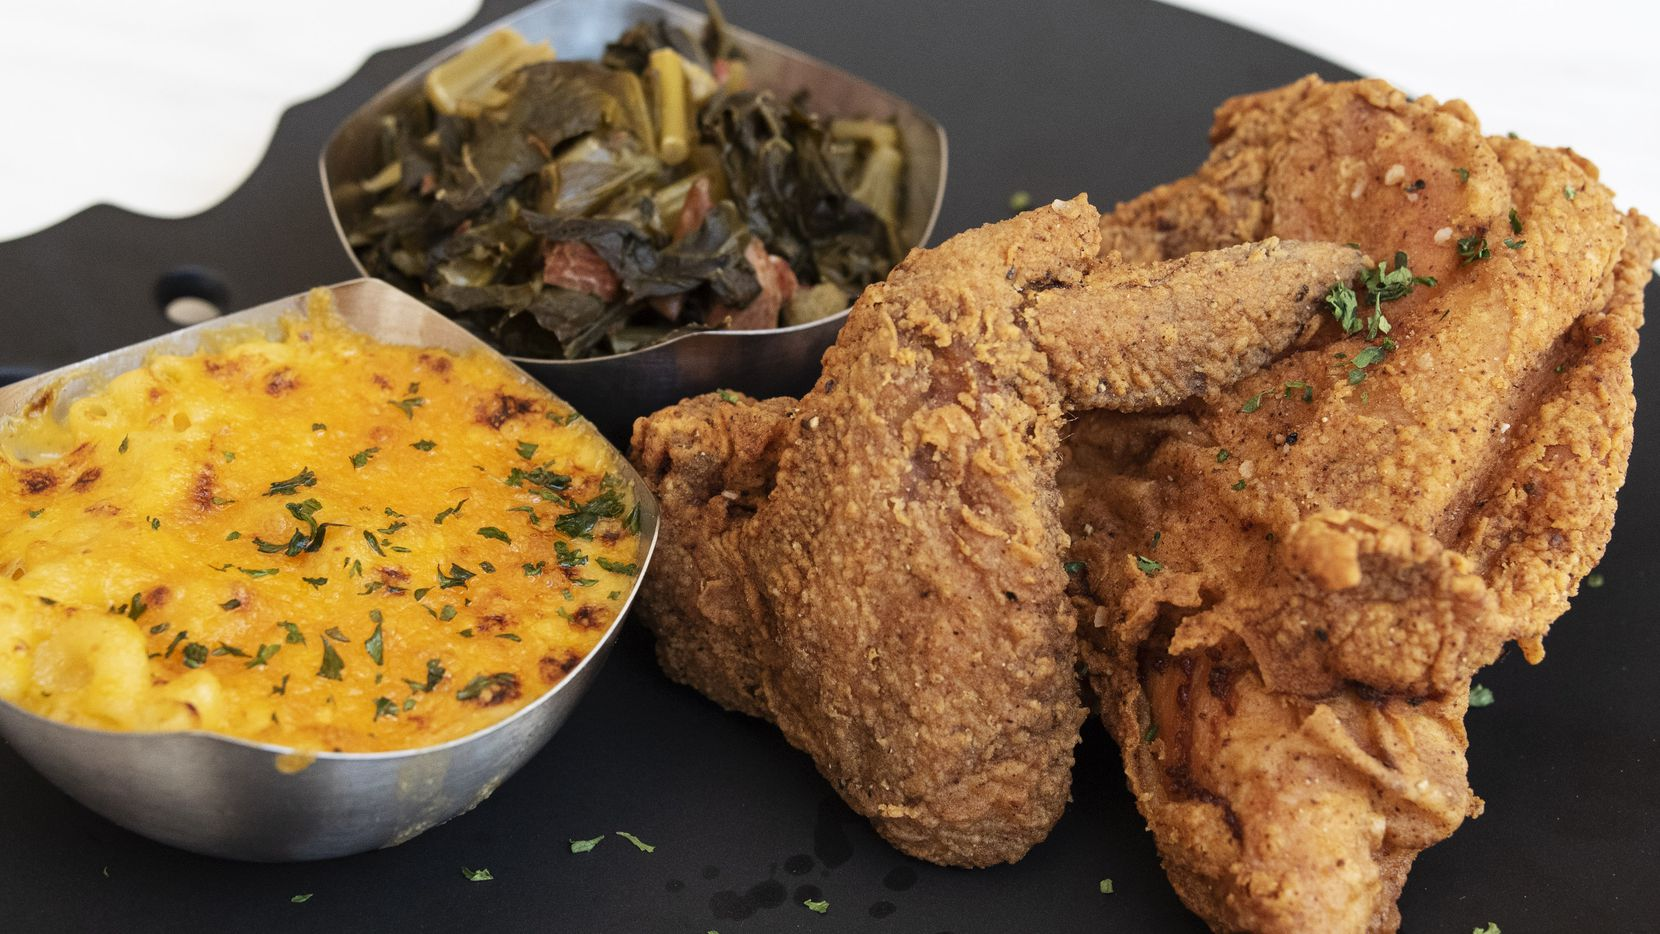 The last time you might have heard about True Kitchen + Kocktails, its owner was asking customers to stop twerking. But head to this downtown Dallas restaurant for its fried chicken, 'Texas Monthly' says.